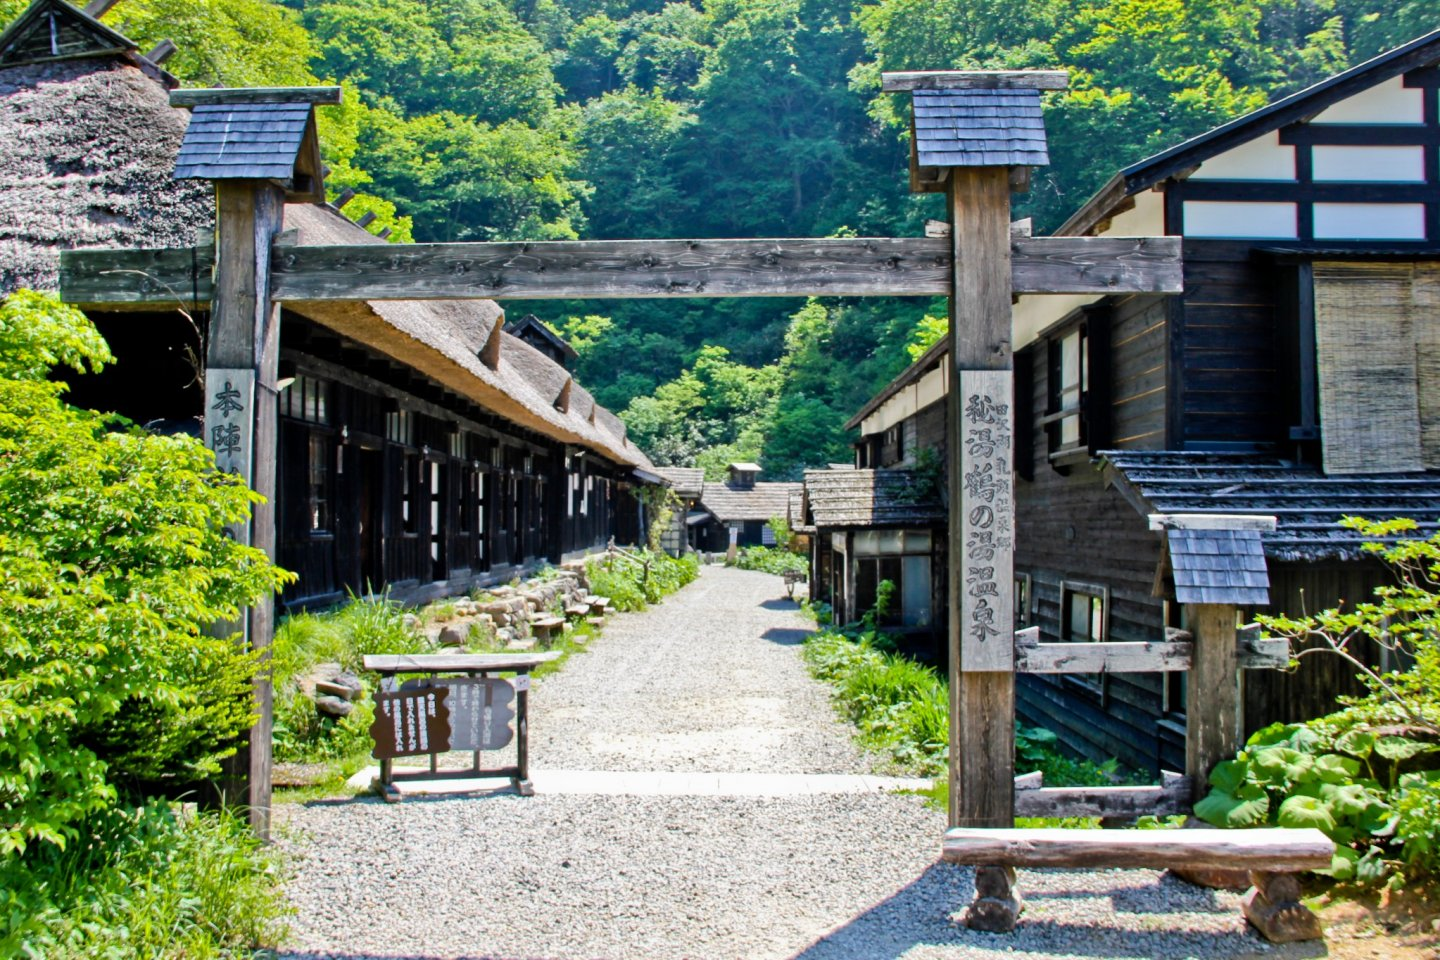 The main entrance to Tsurunoyu Onsen